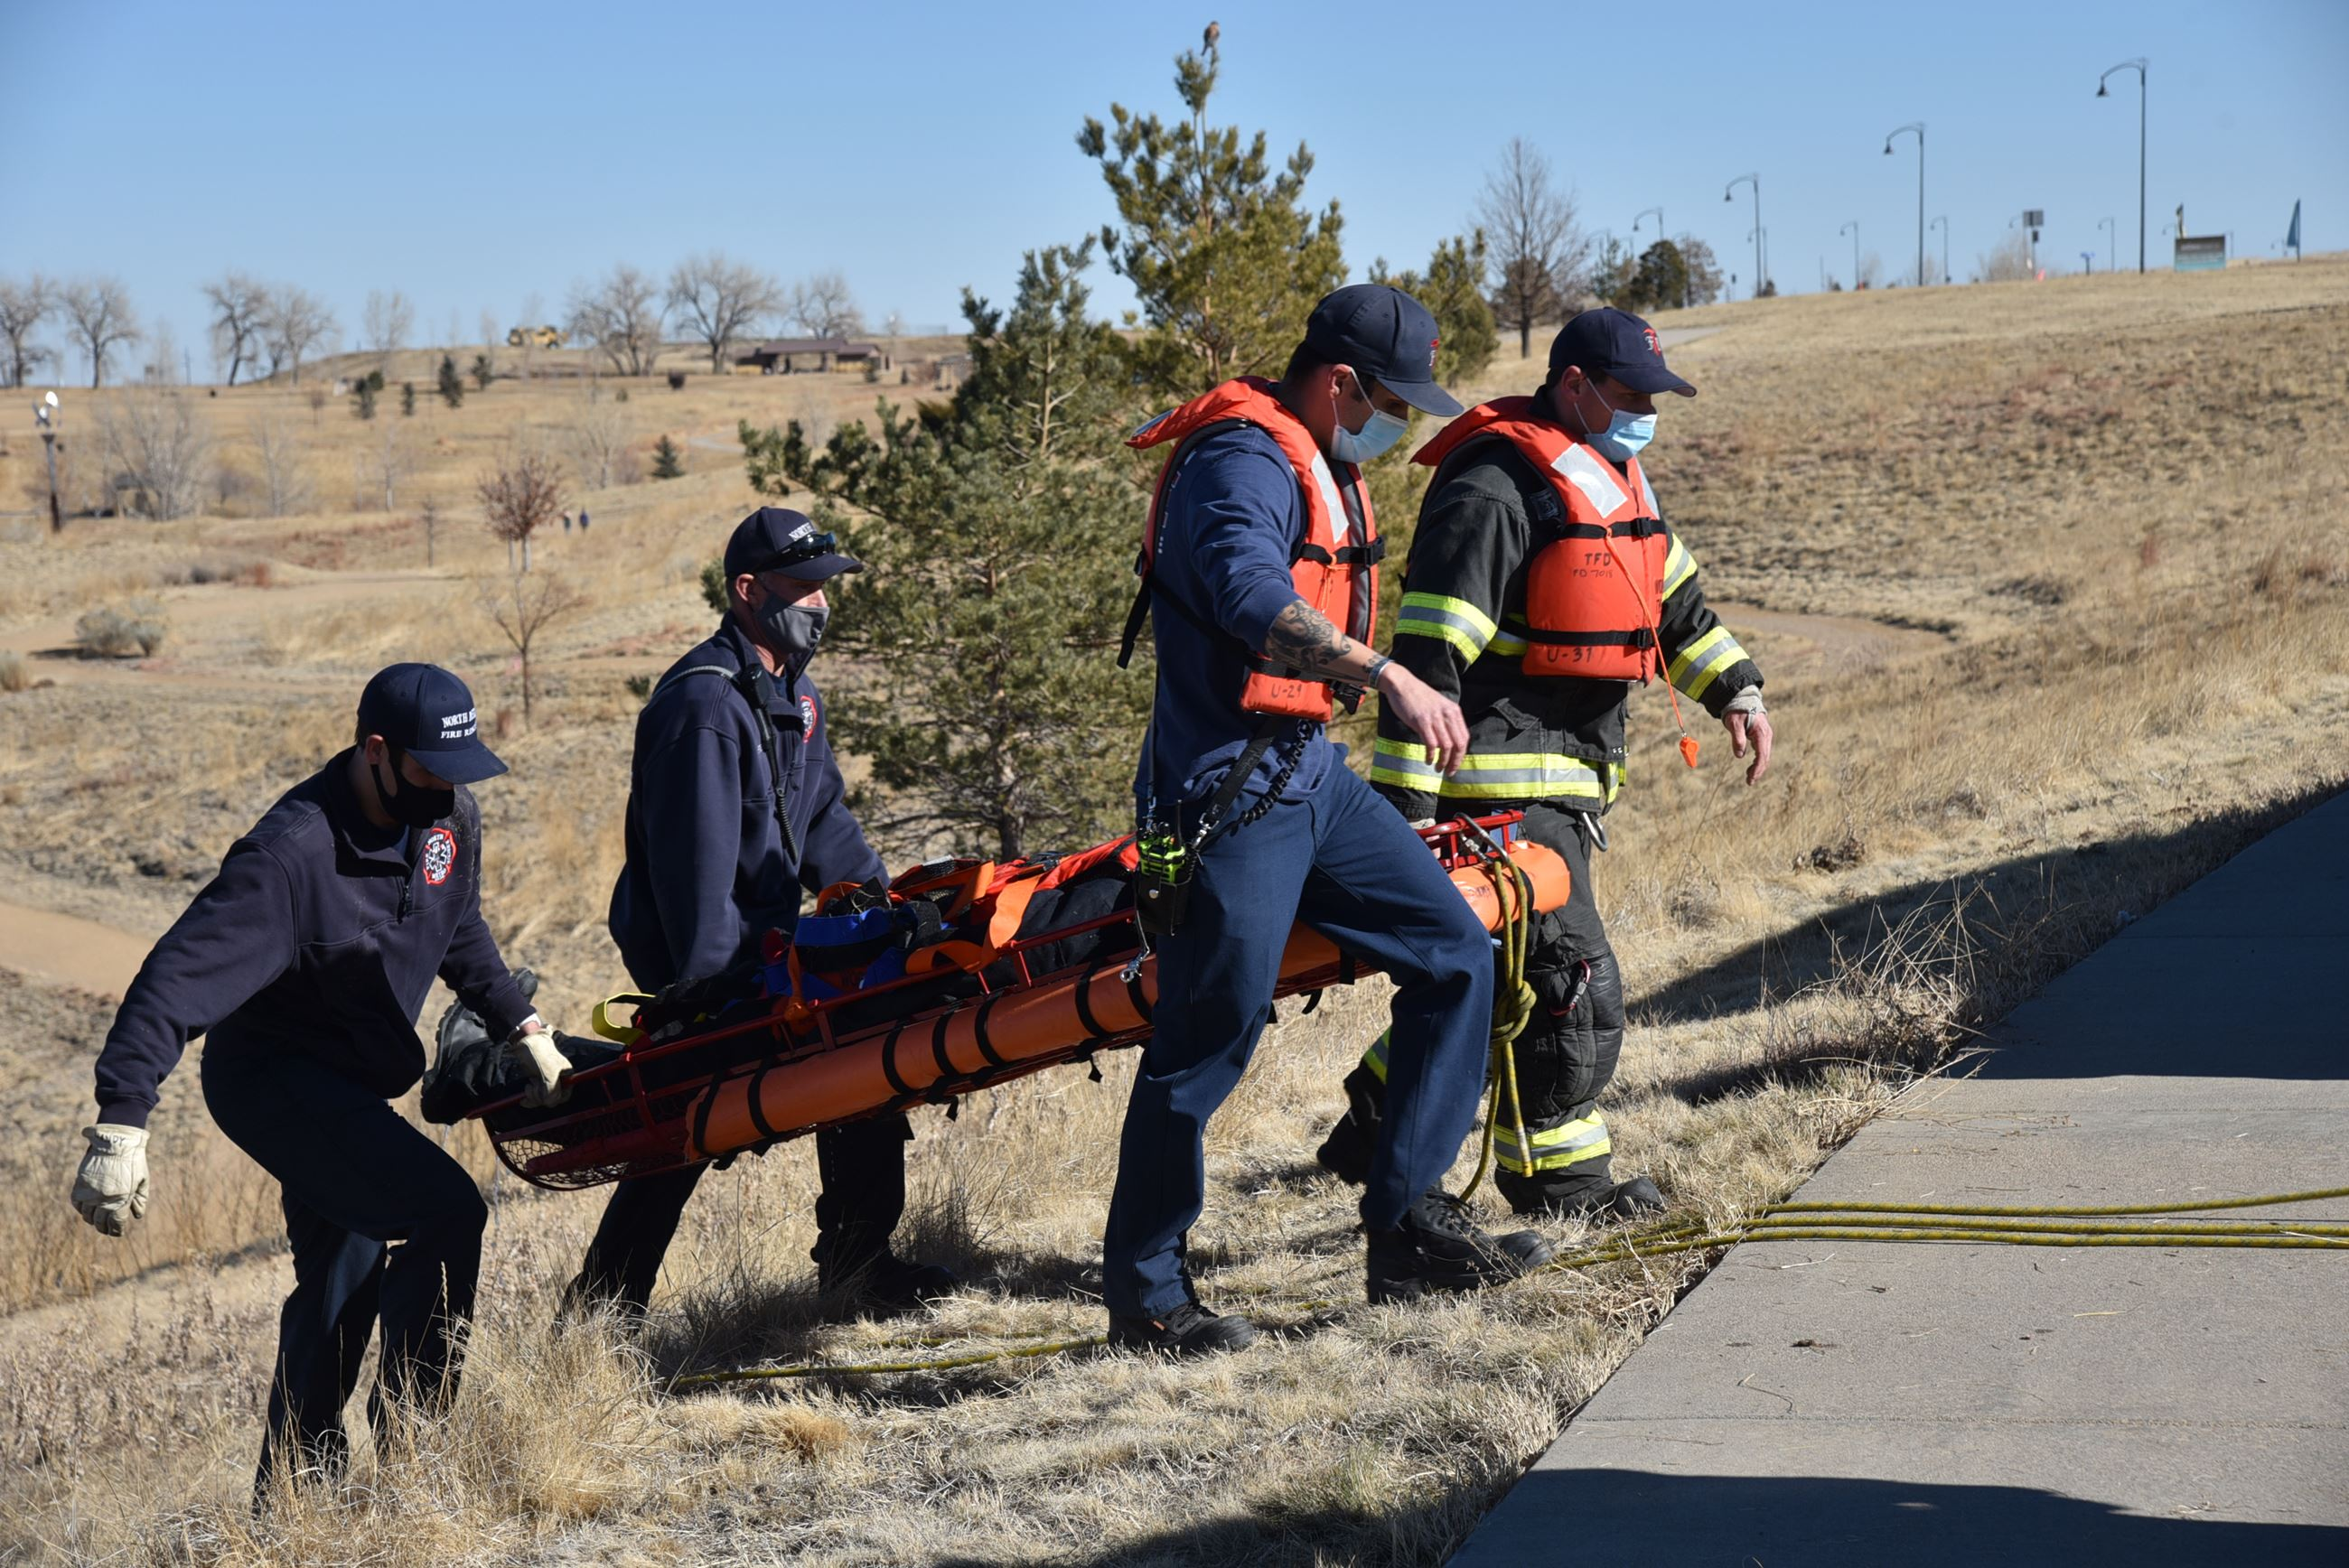 Firefighters transport the pretend victim up a steep incline to the medic unit.